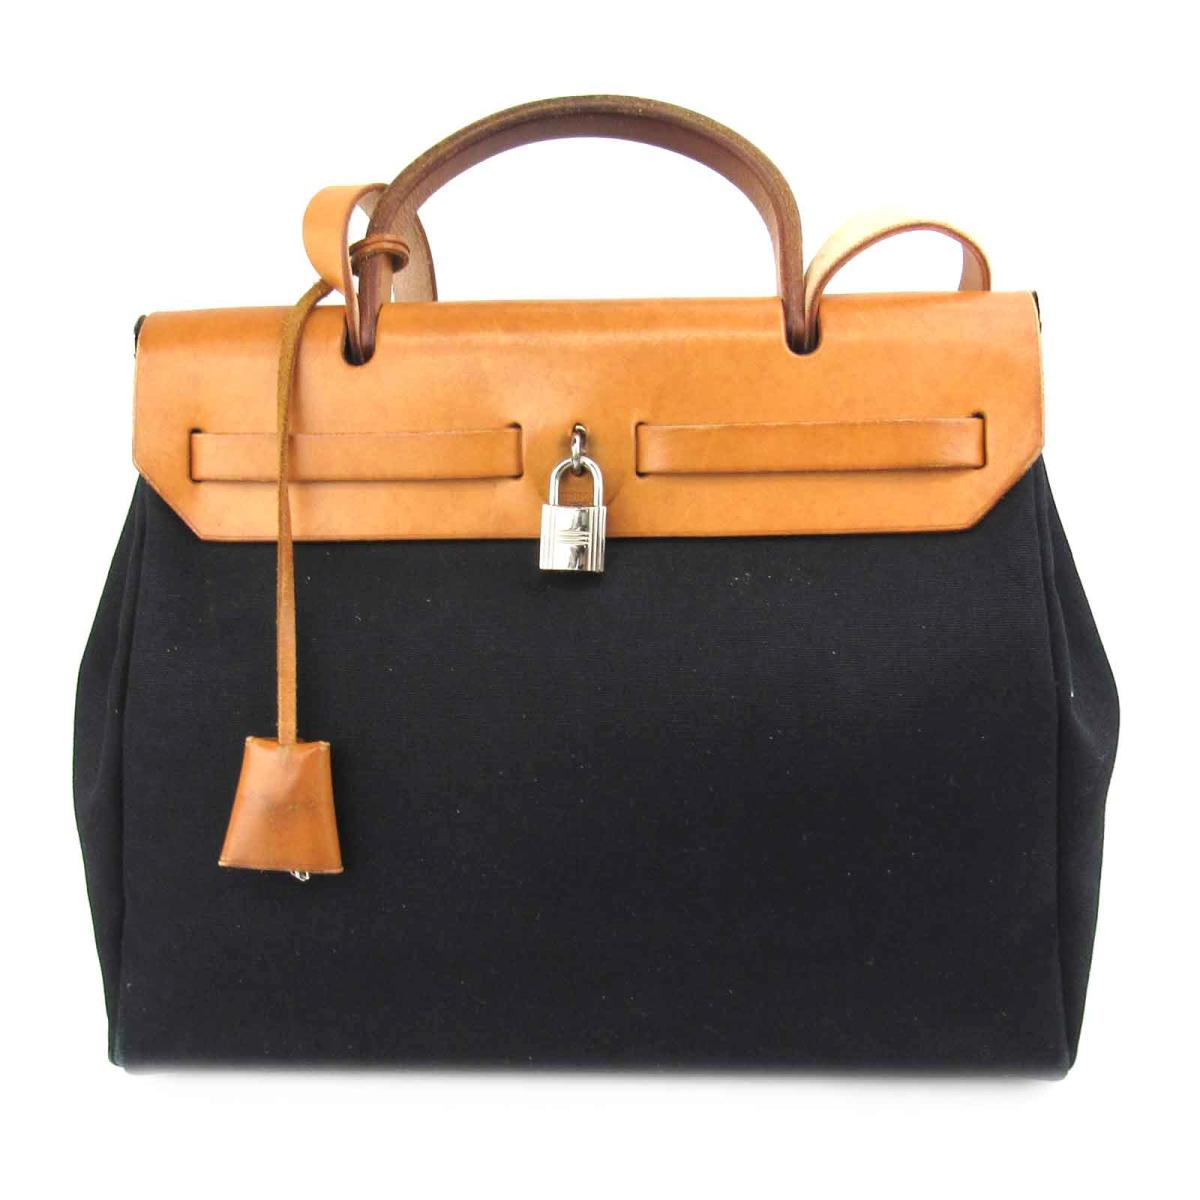 d94cdb804a620 ... Auth HERMES Herbag PM shoulder hand bag Toile H Barenia leather  Natural Black Used ...